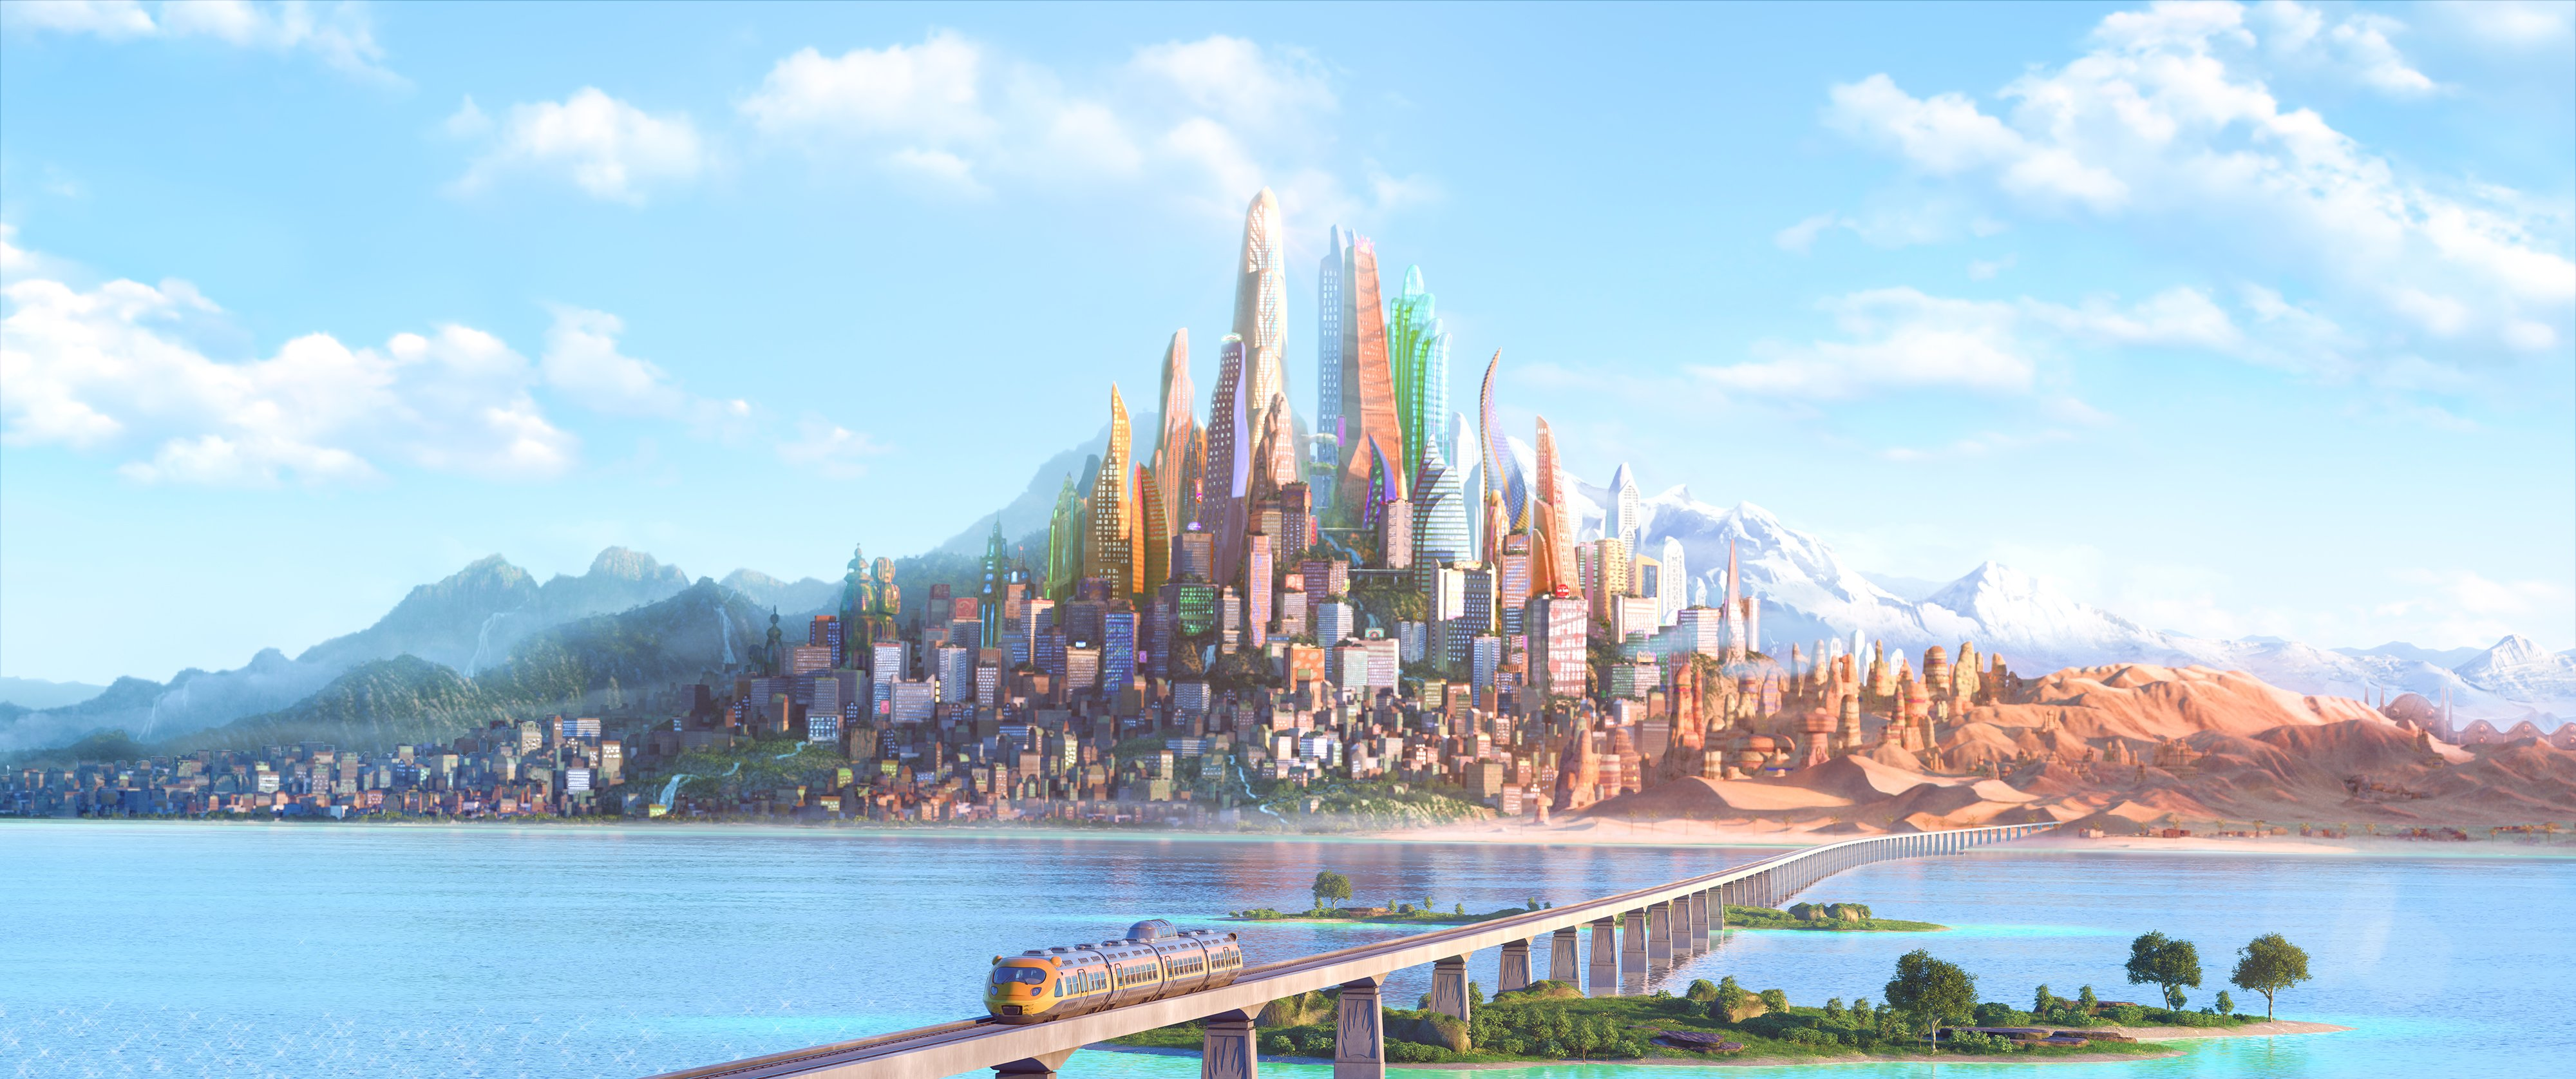 hd wallpaper background id703942 4000x1675 movie zootopia